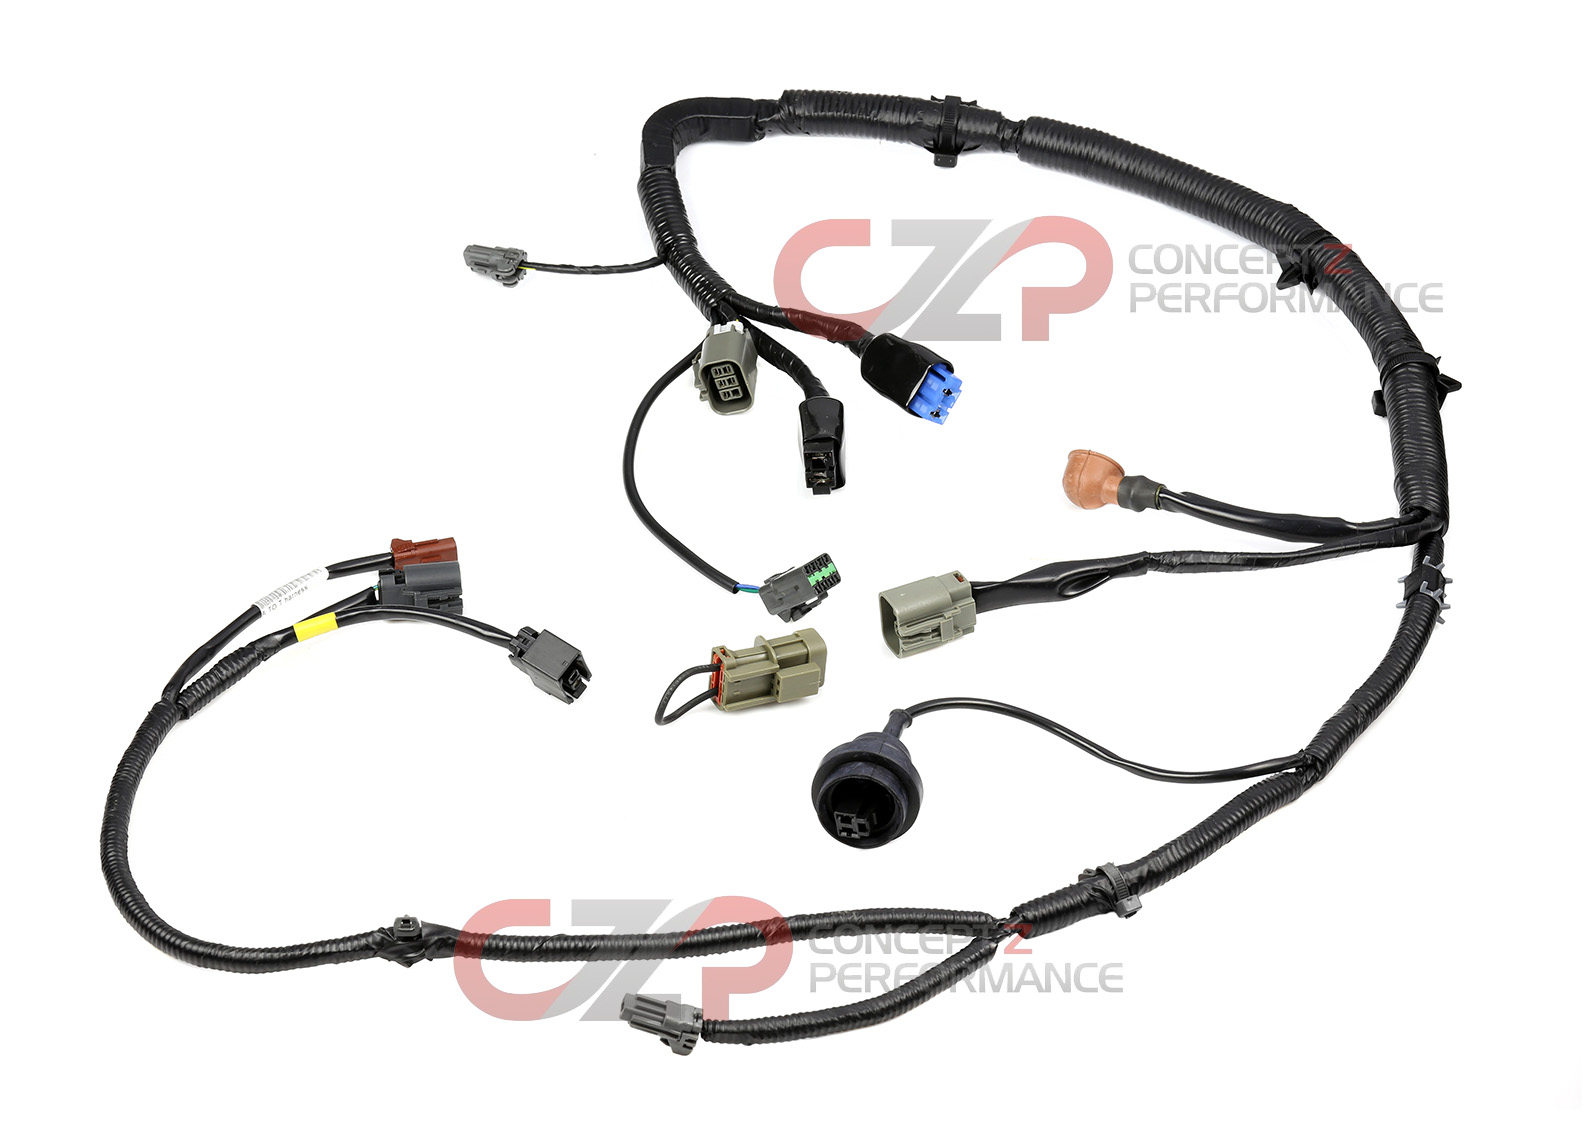 wiring specialties alternator to transmission harness automatic at rh conceptzperformance com 86 300zx alternator wiring 300zx alternator wiring diagram